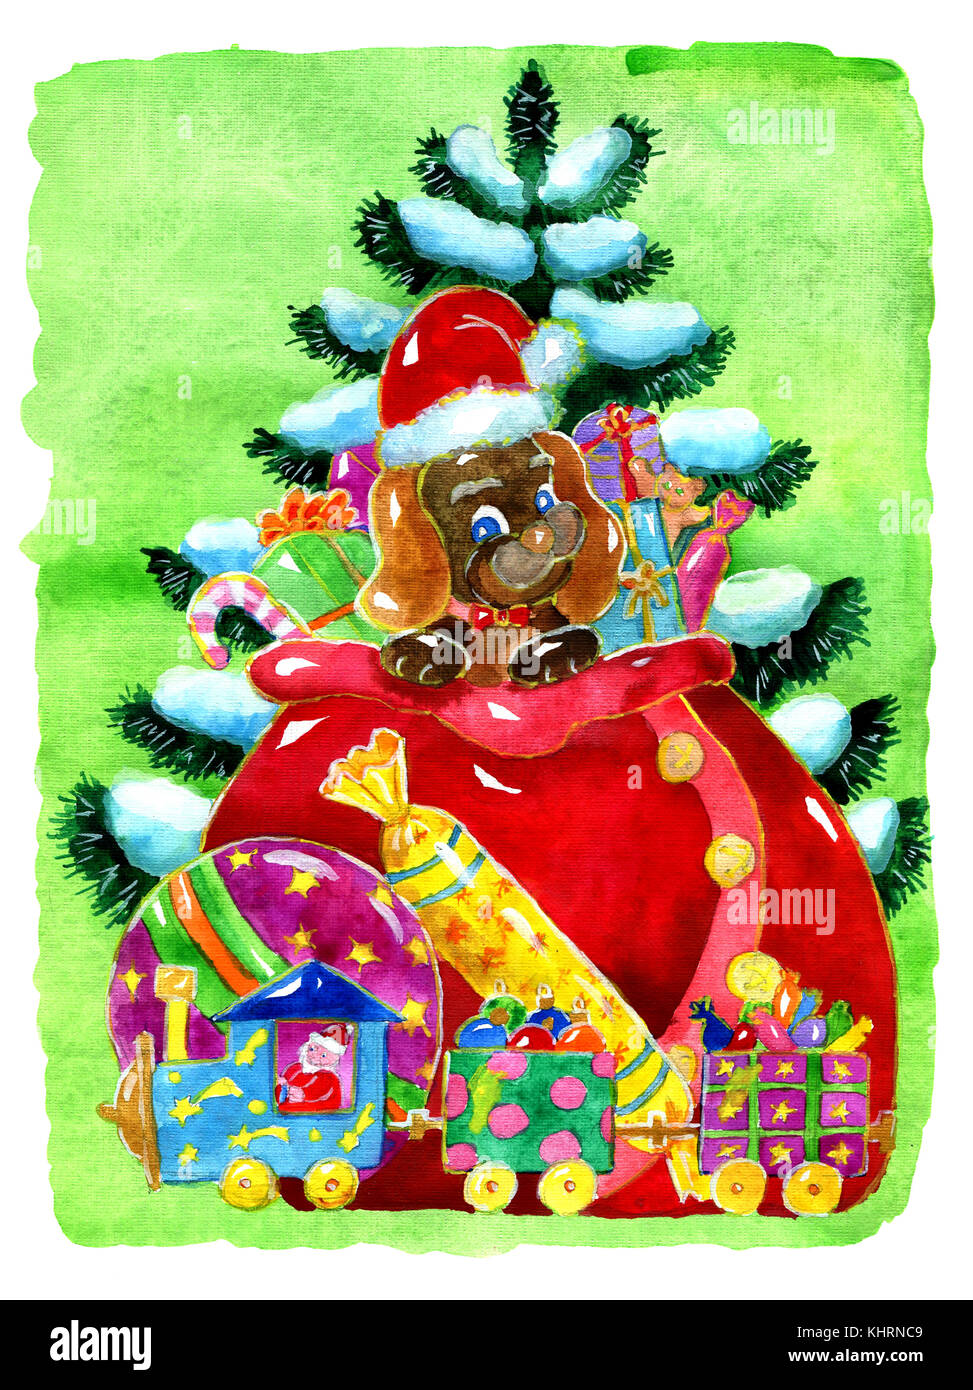 Funny puppy with Santa bag of toys and gifts against conifer in snow. Hand drawn illustration for poster, greeting - Stock Image